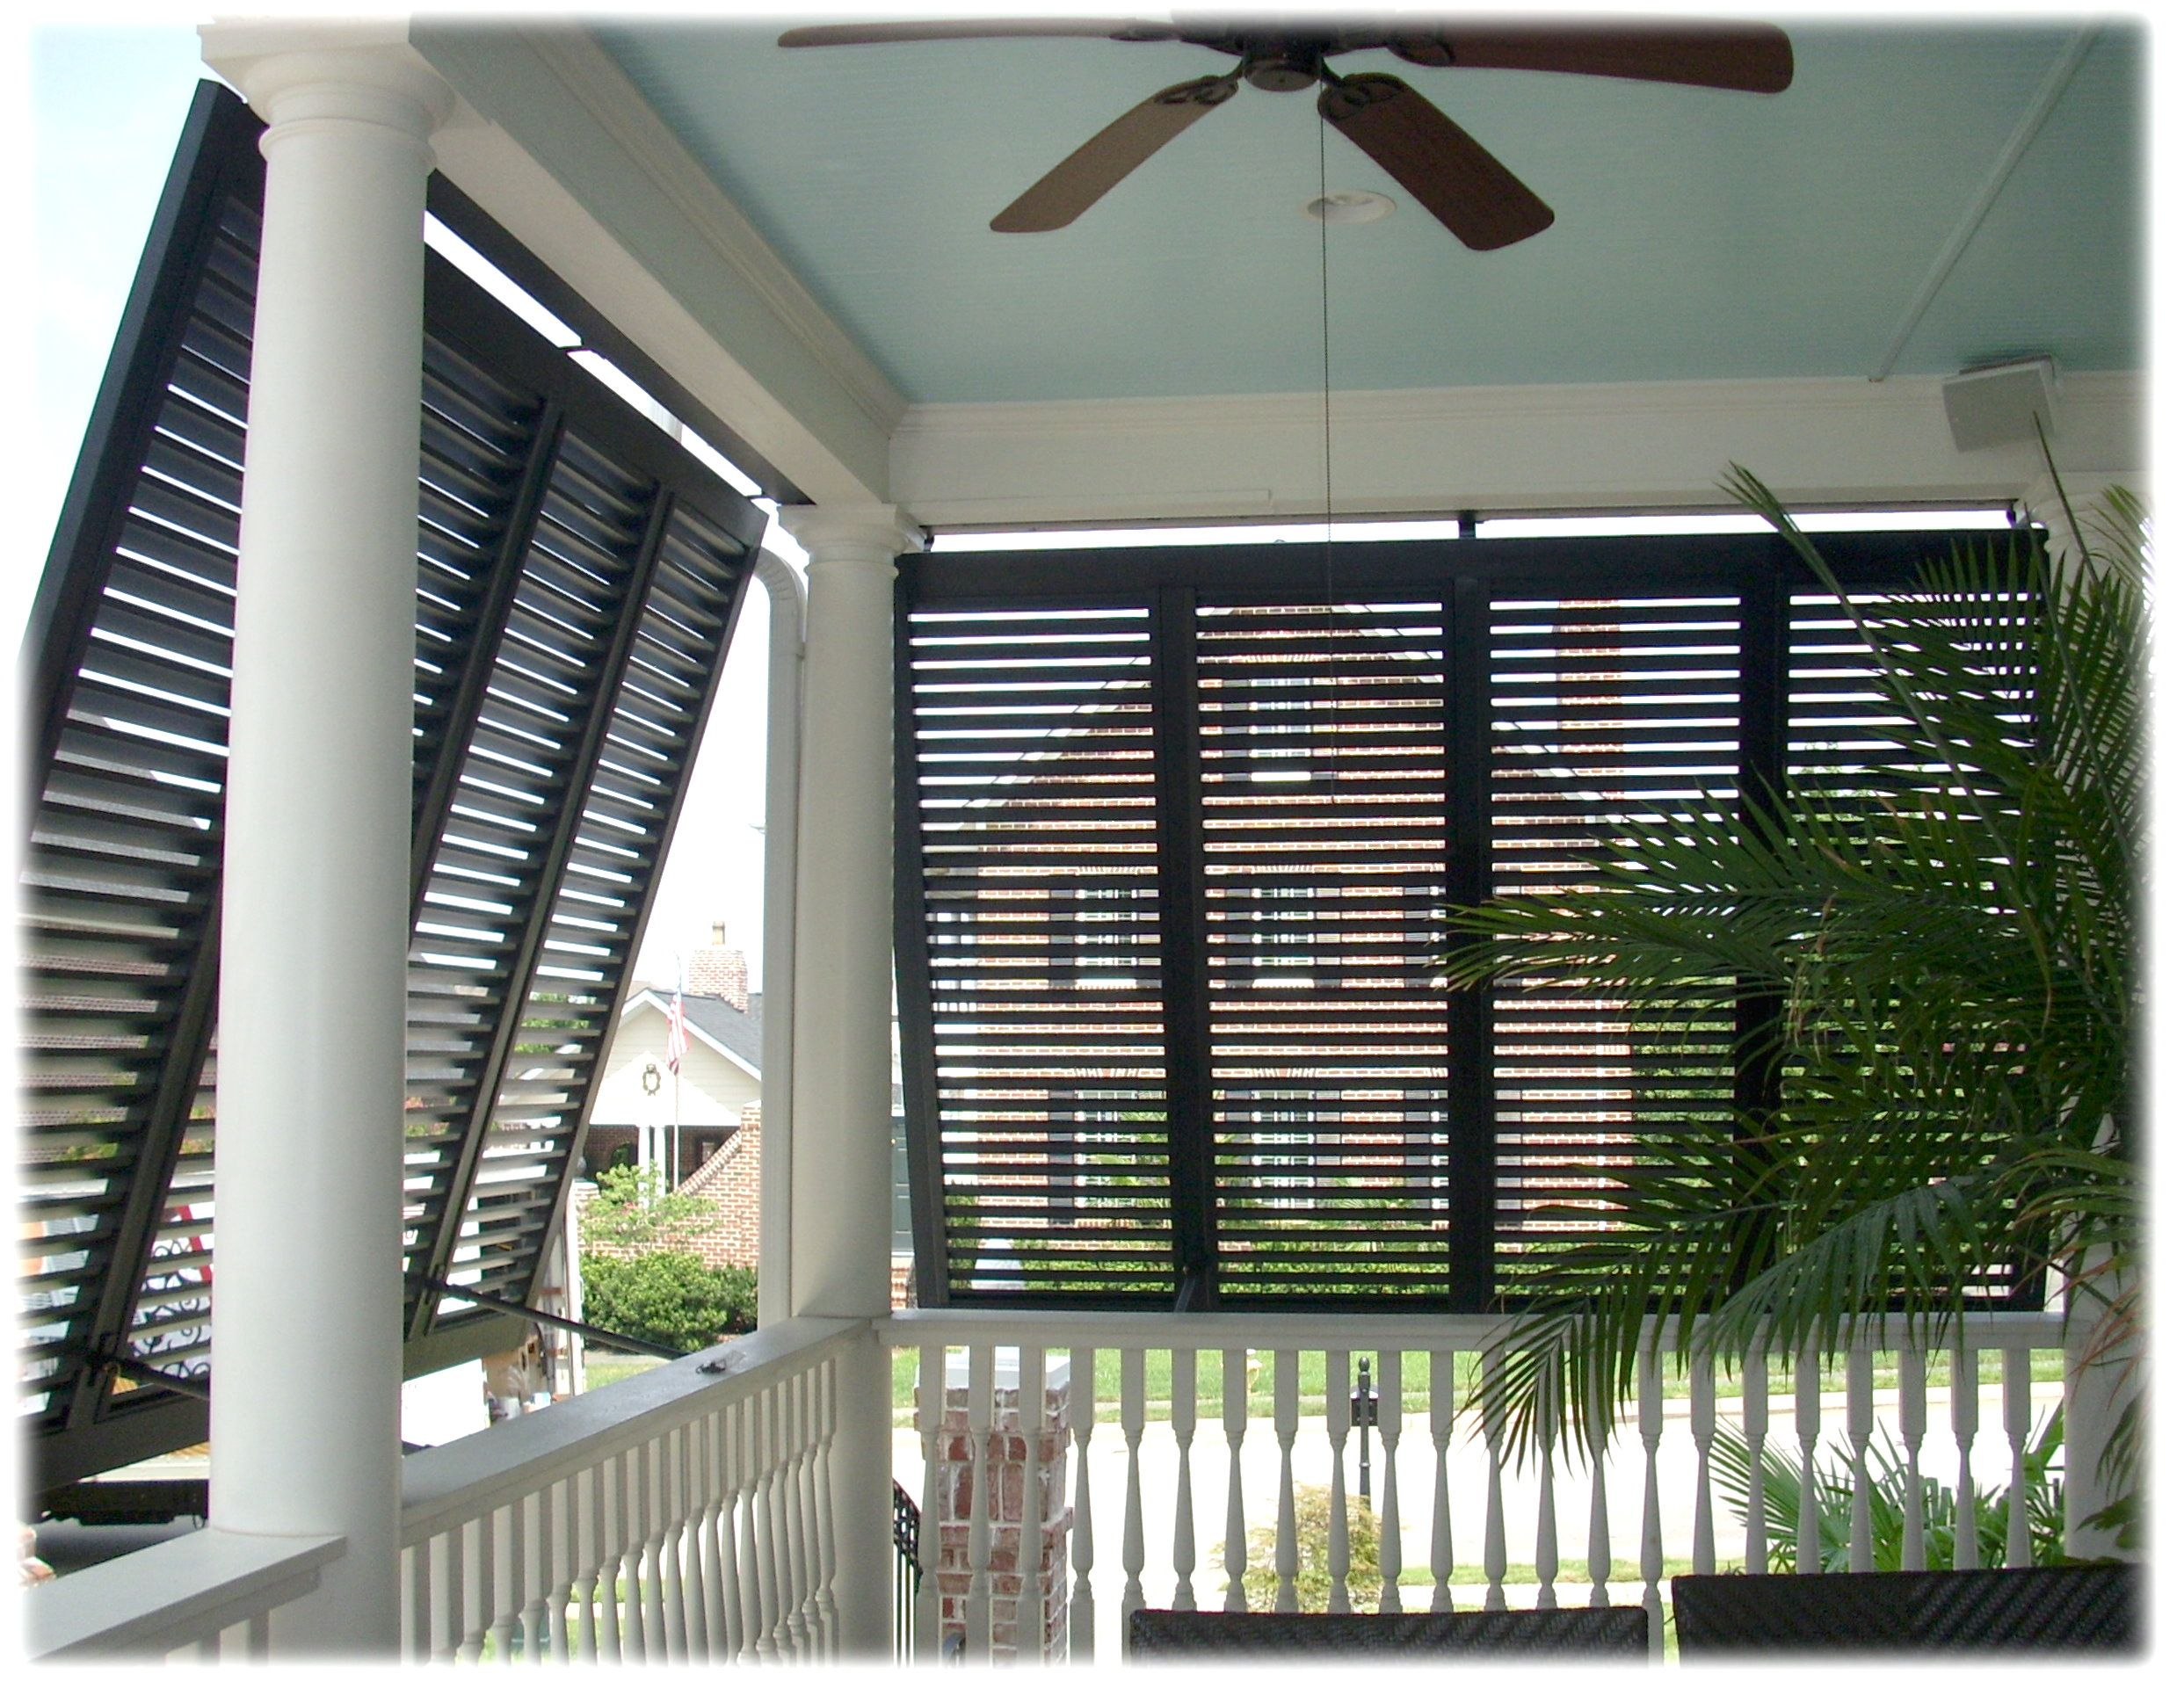 Porch Shutters I Would Love To Have These On My Porch